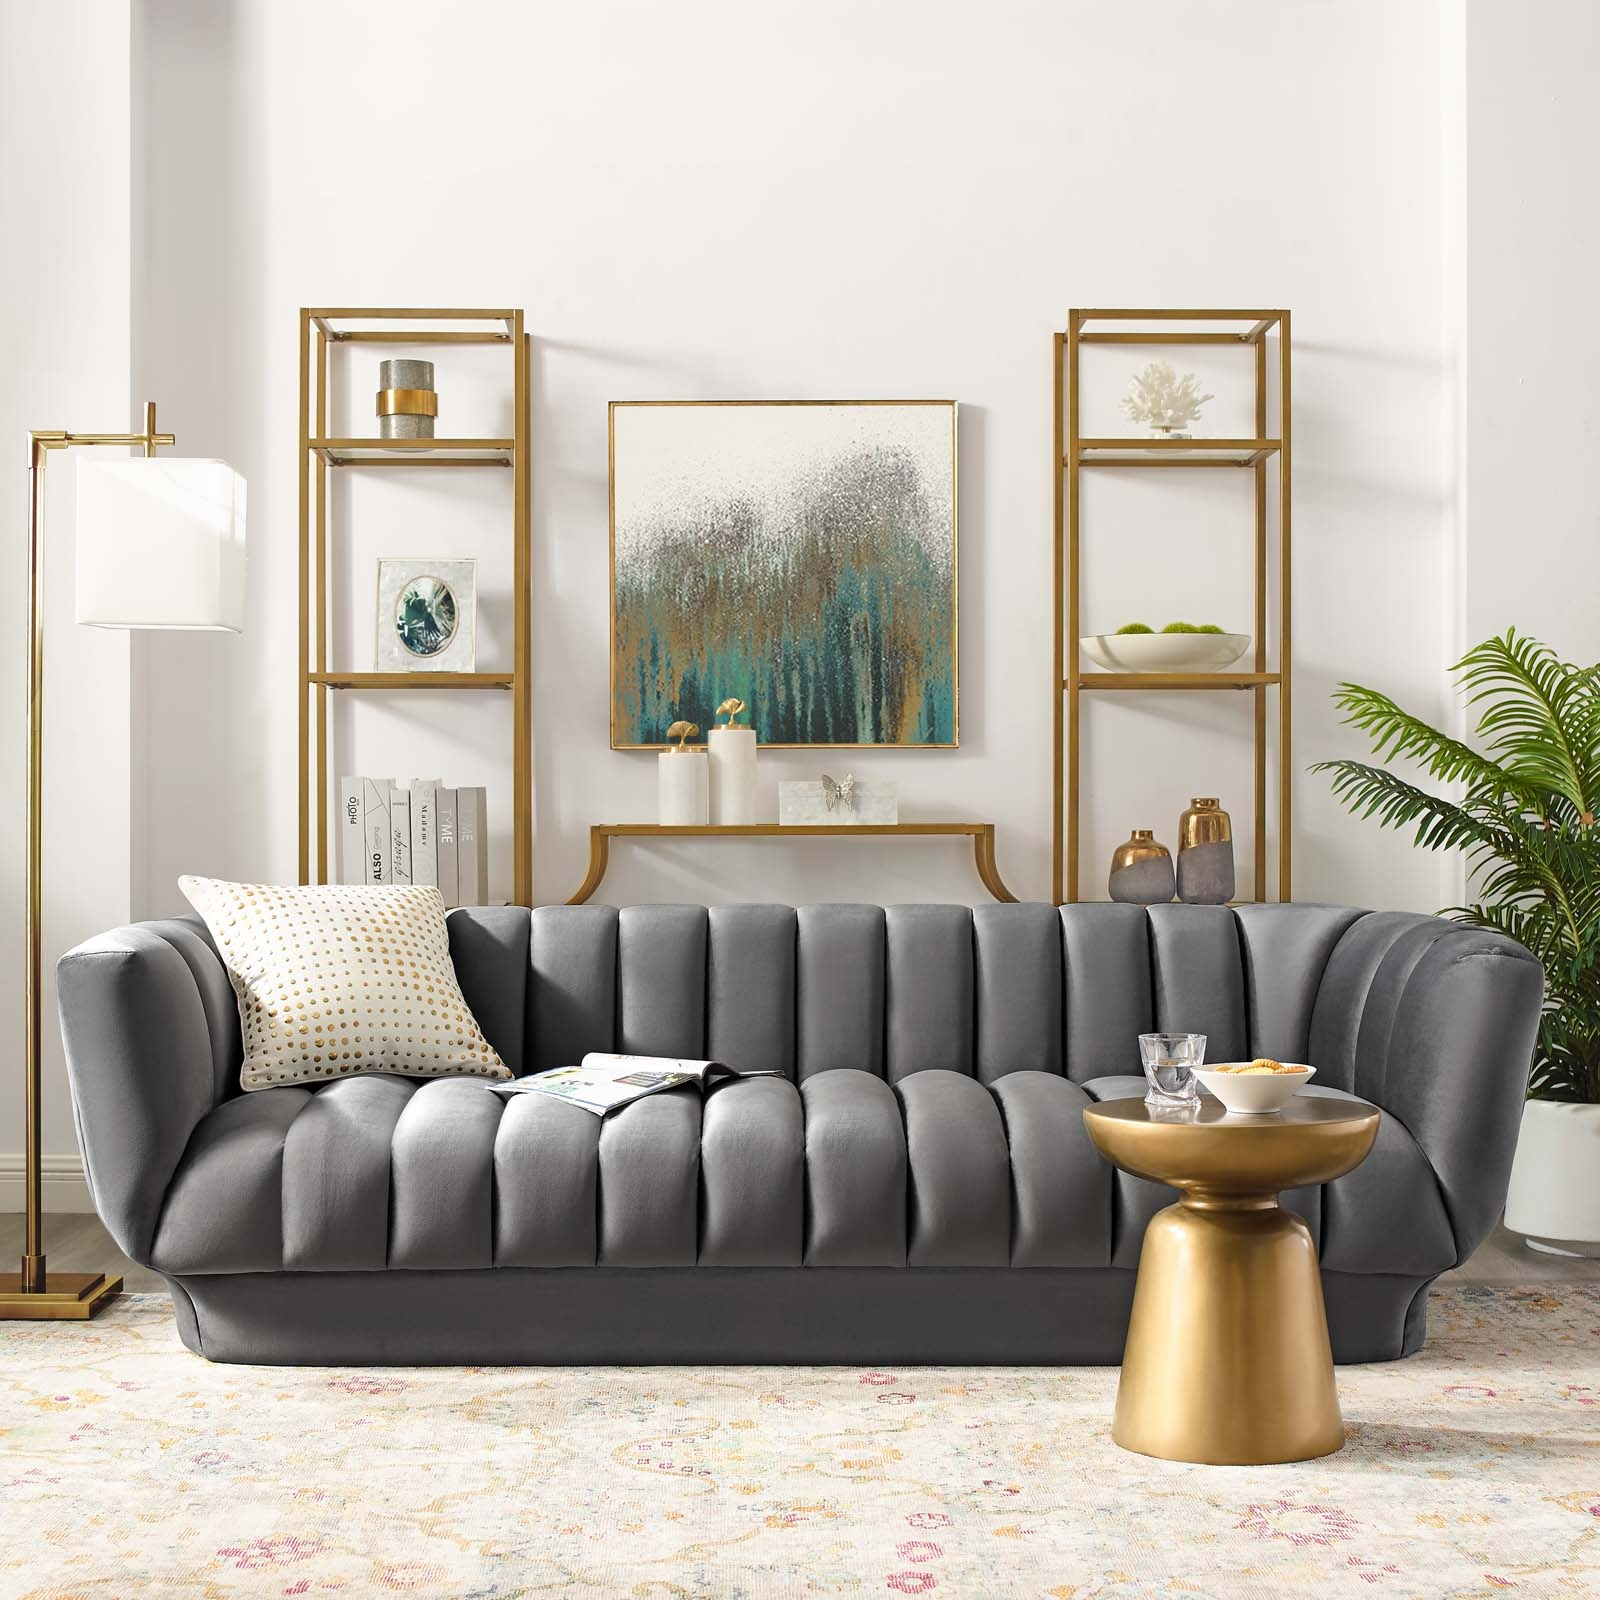 Entertain Grey Tufted Performance Velvet Sofa | Las Vegas ...